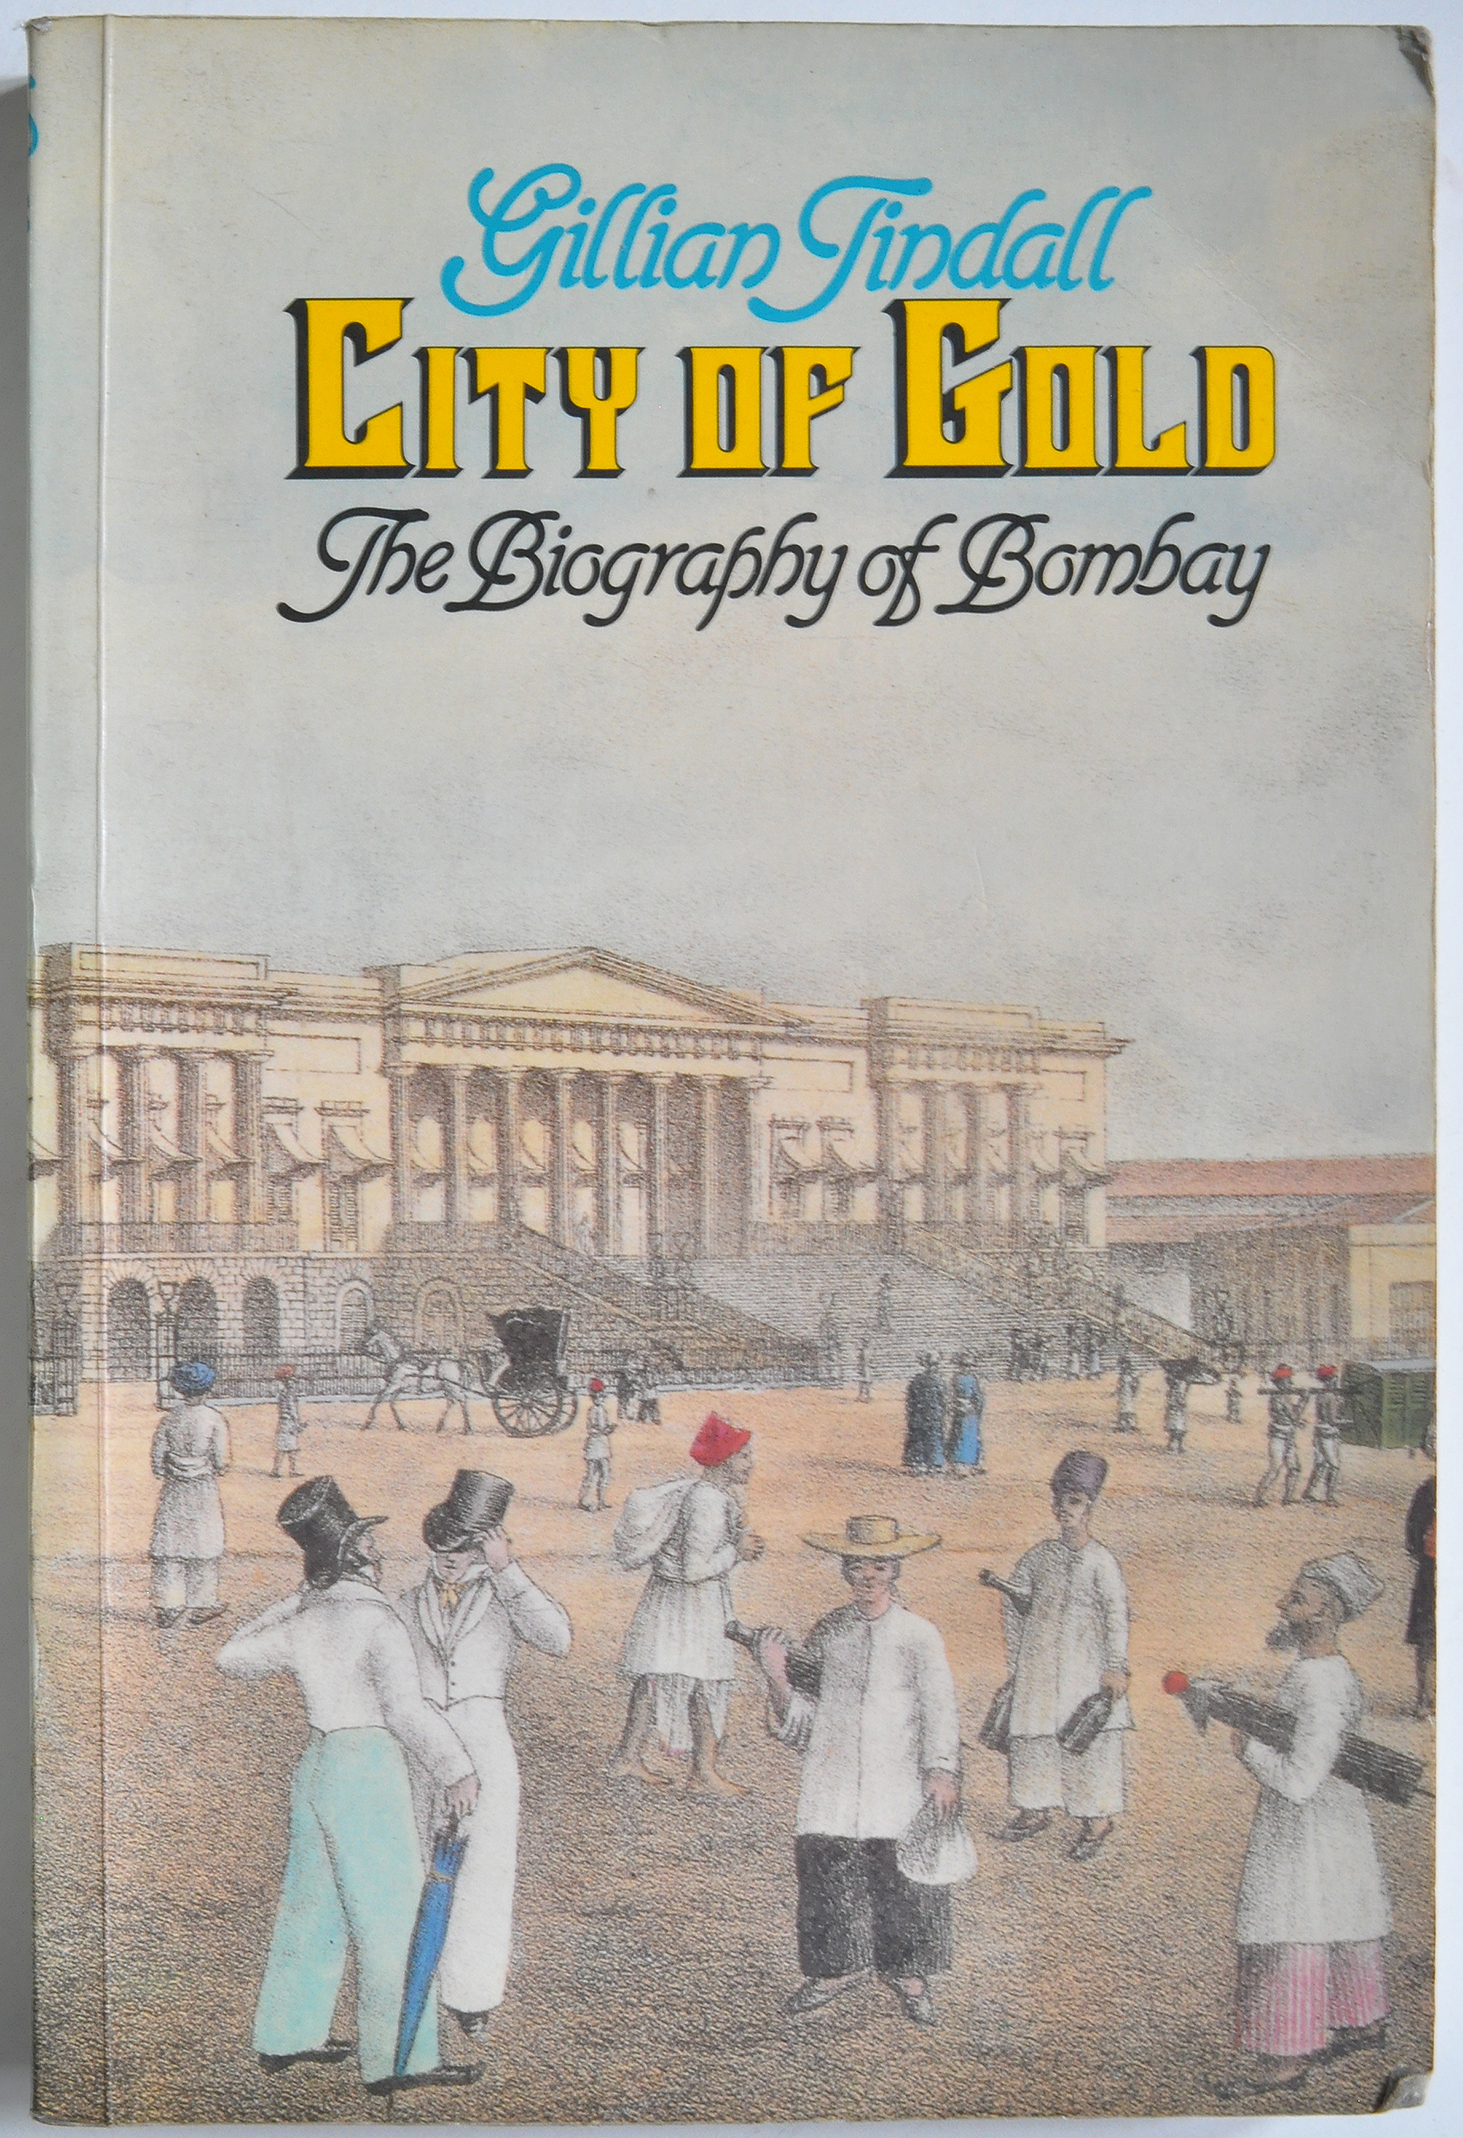 Old Book – City Of Gold The Biography of Bombay